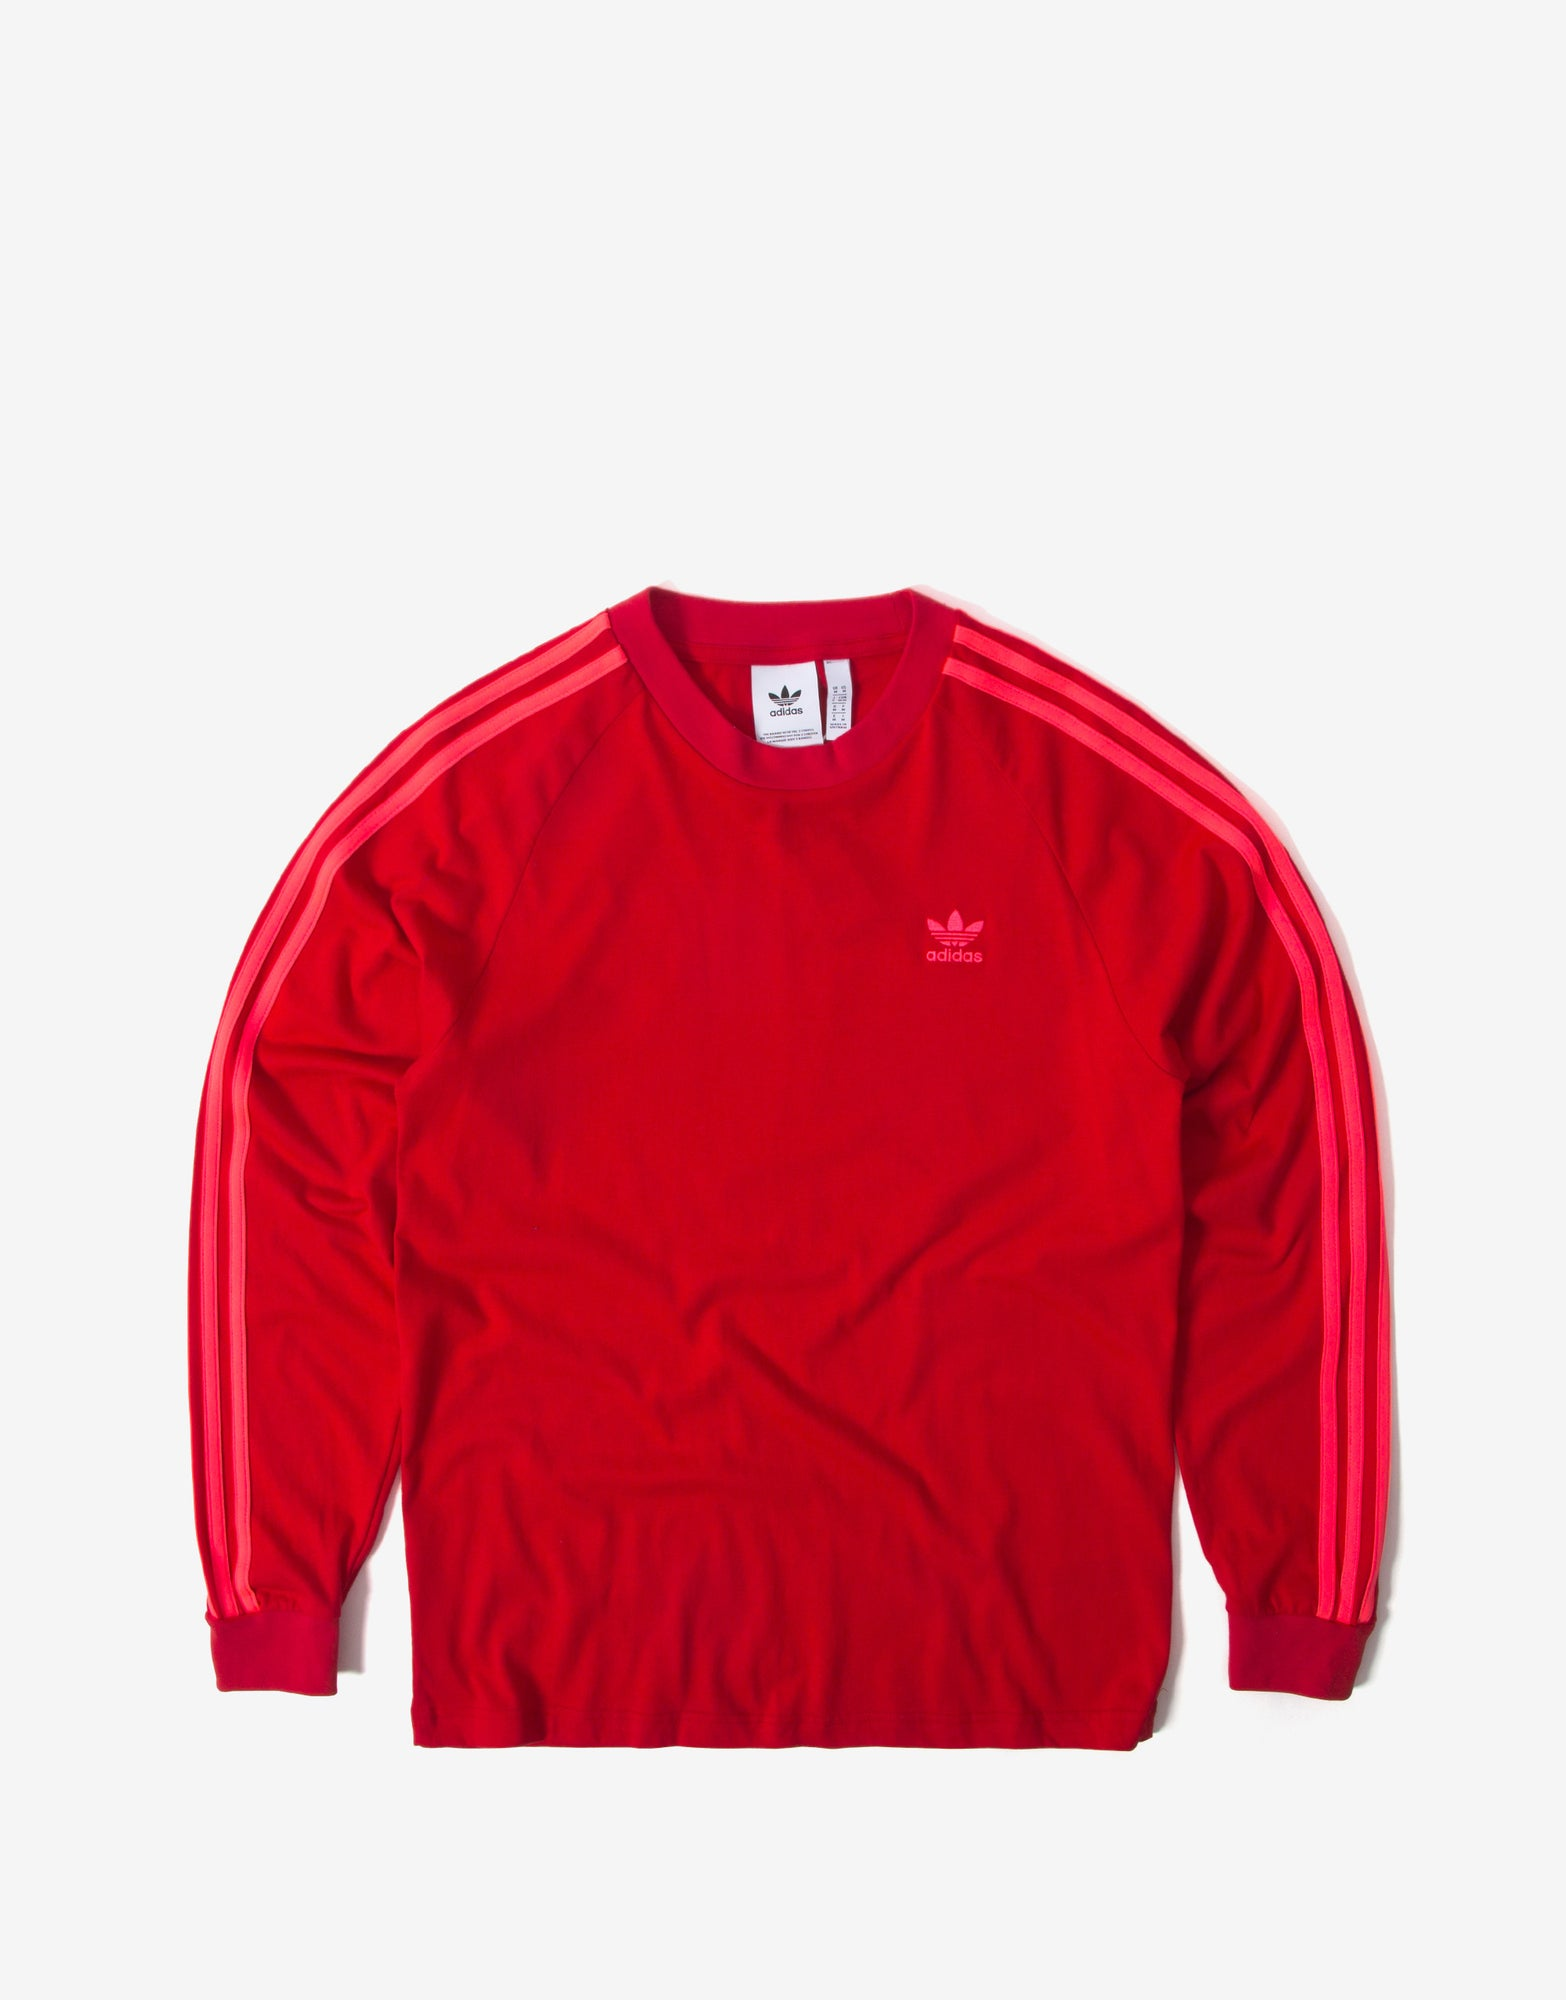 adidas Originals BLC 3 Stripes Long Sleeve T Shirt - Scarlet/Flame Red